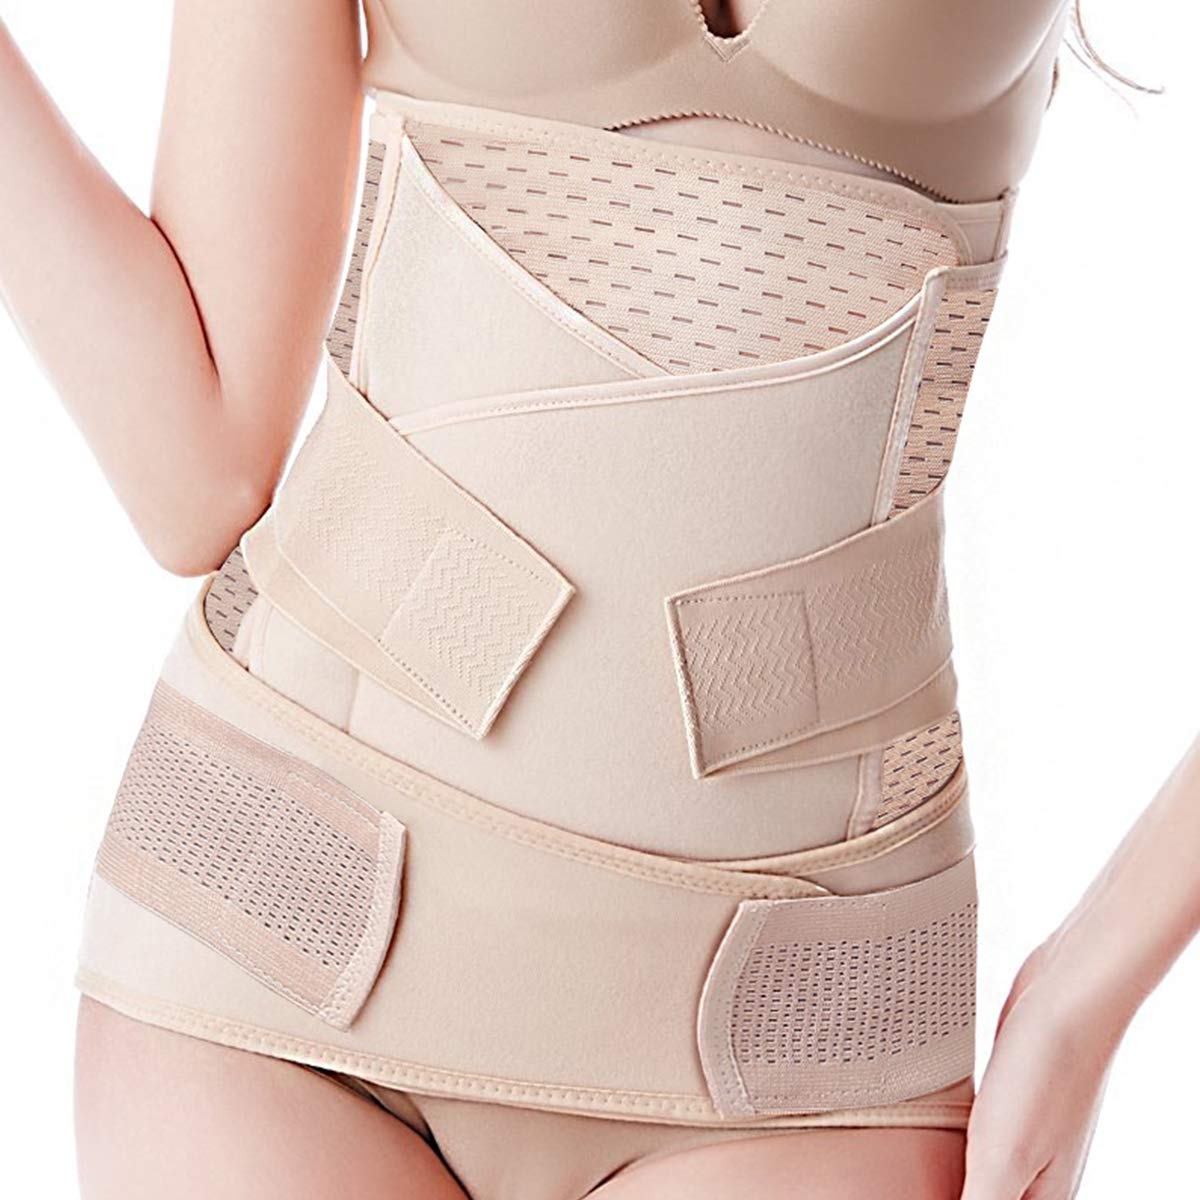 Shapewear Abdominal Binder Waist Trainer Postnatal Wrap Body Shaper Corset for Women Fast Recover from C Section Surgery Postpartum Support Recovery Belly Band Girdle 3 in 1 Belt